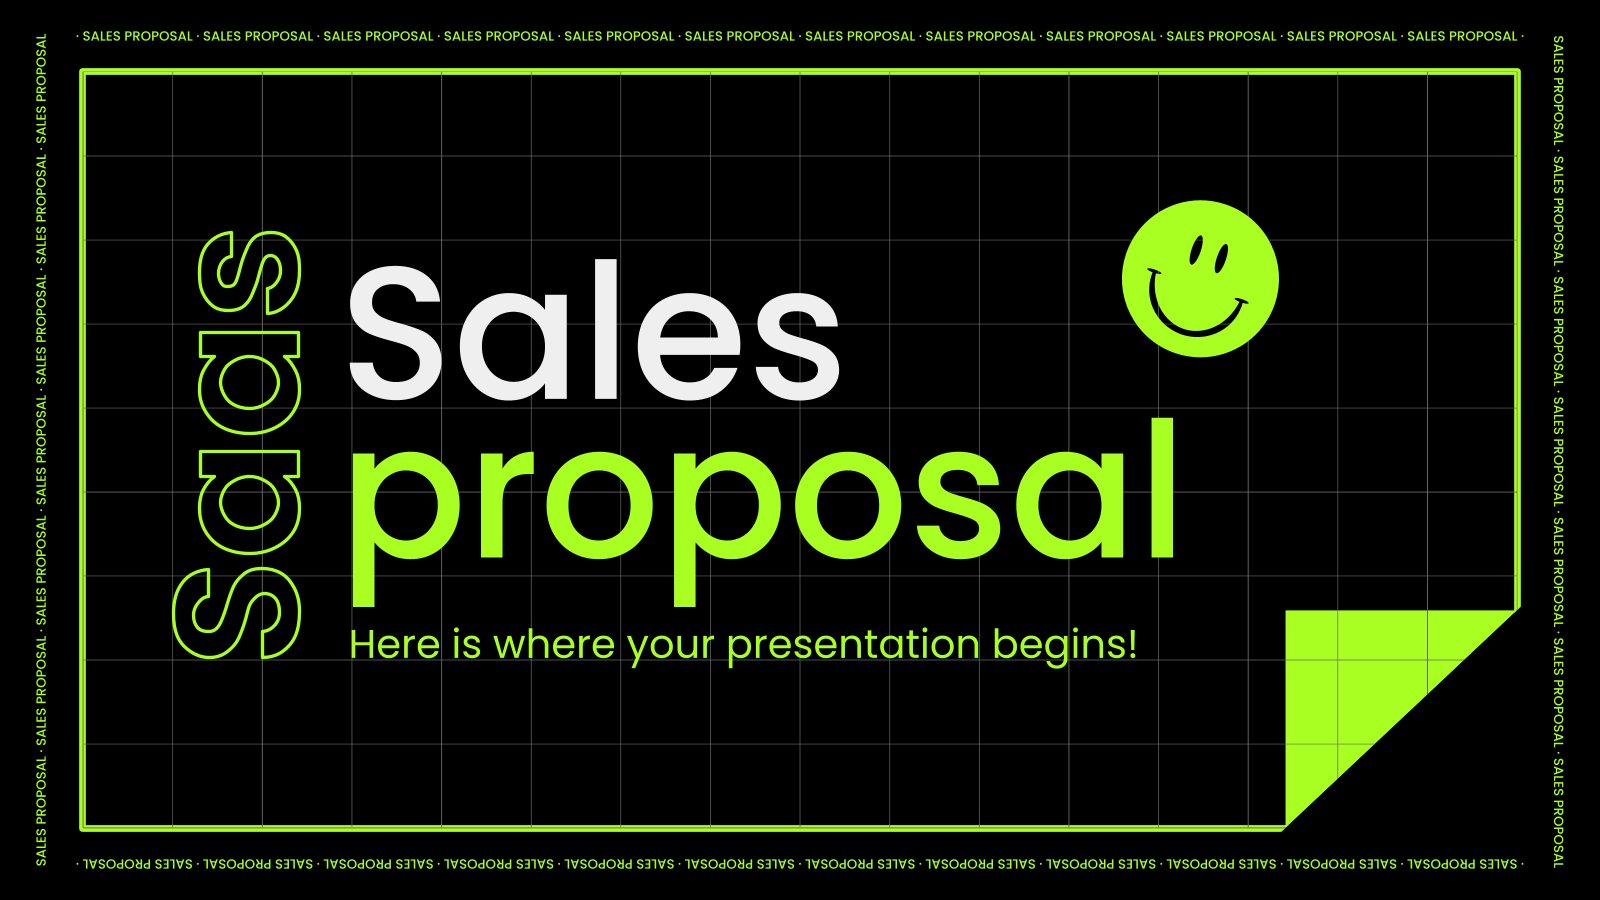 Saas Sales Proposal presentation template